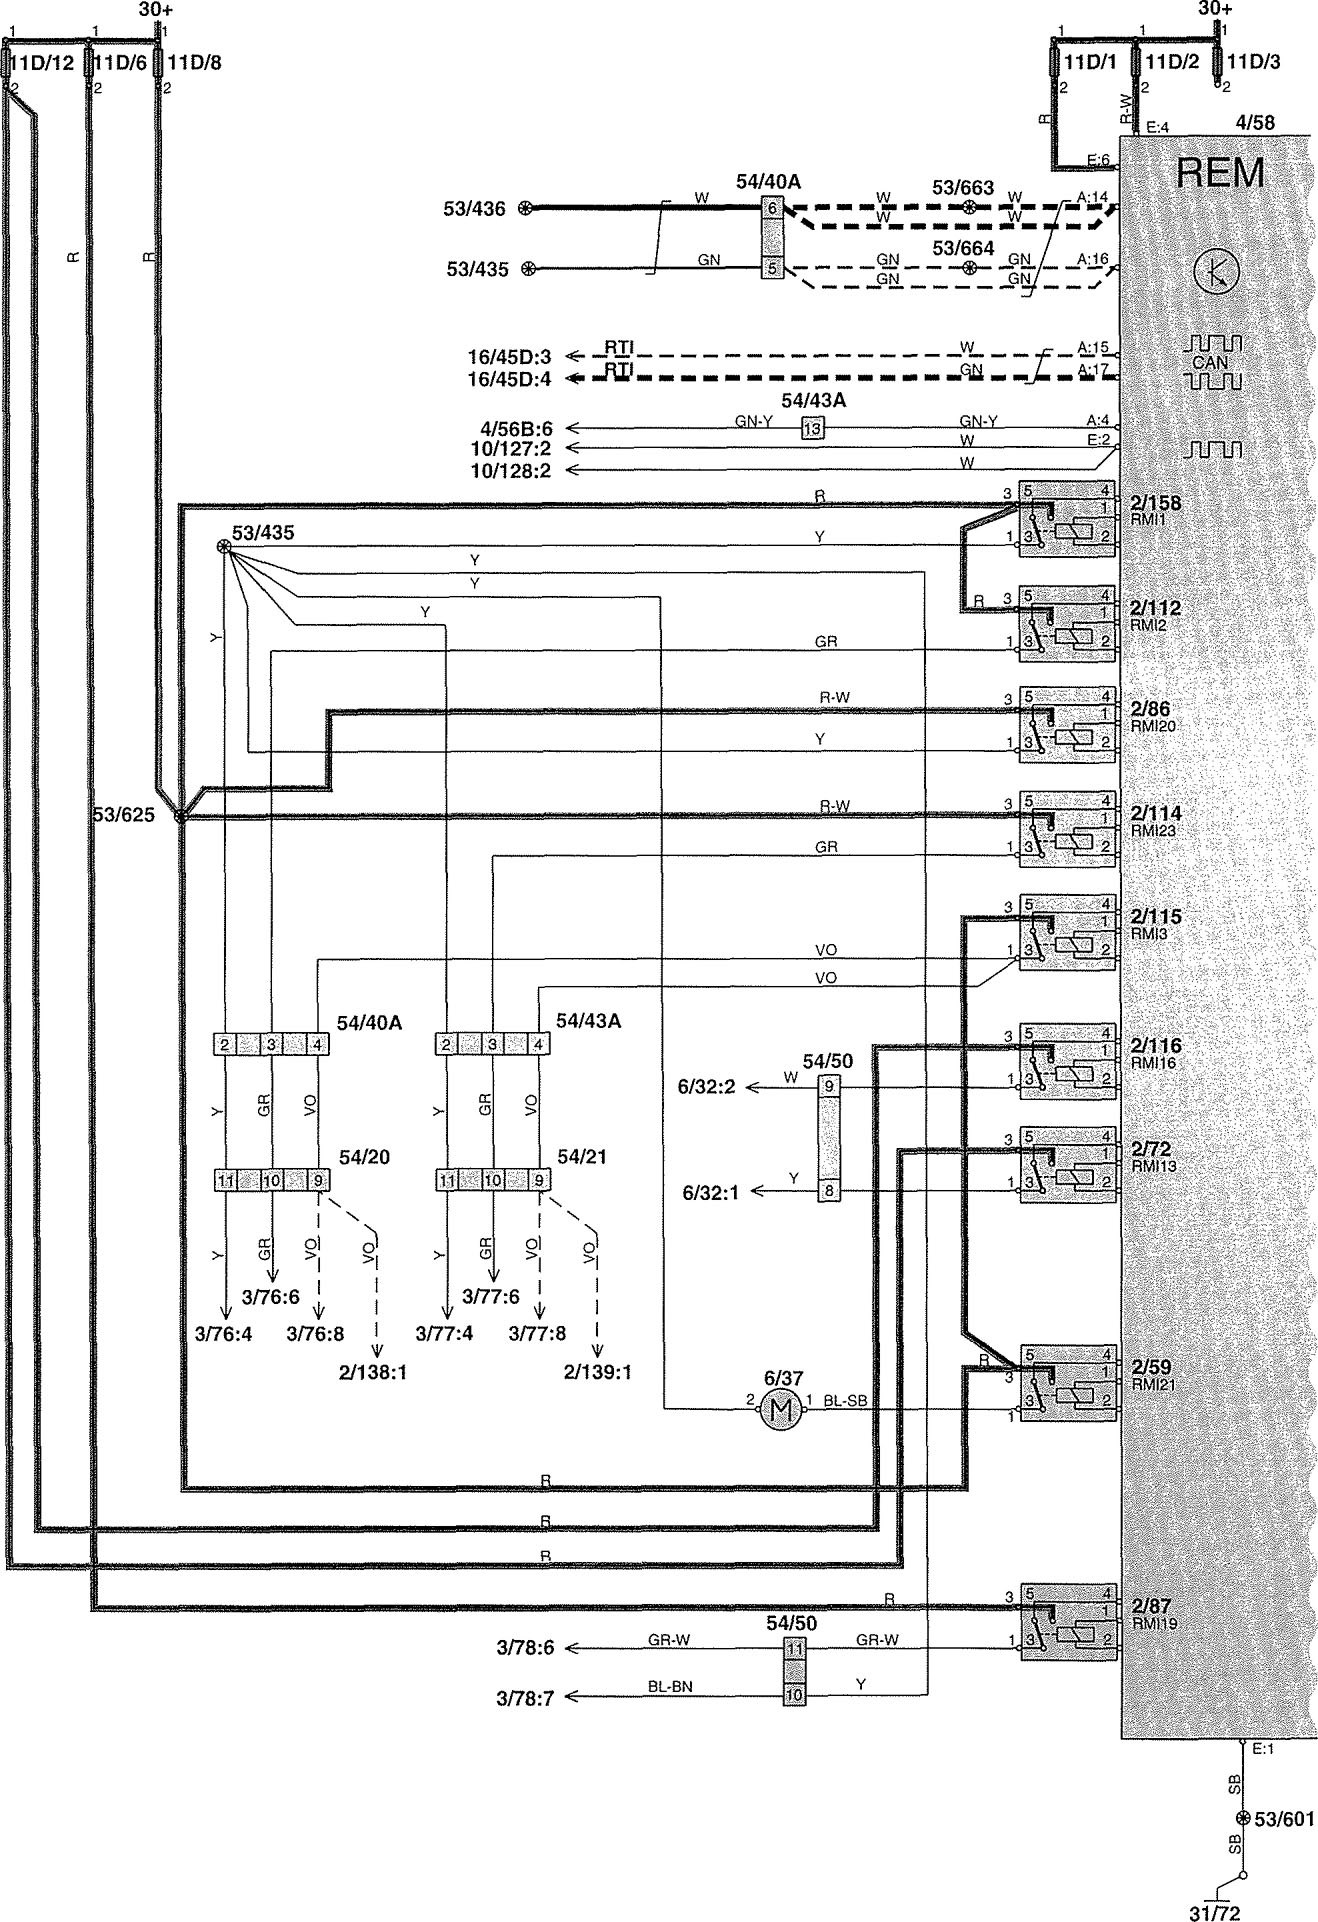 1988 Volvo 740 Radio Wiring Diagram : Volvo radio wiring diagram jeep comanche